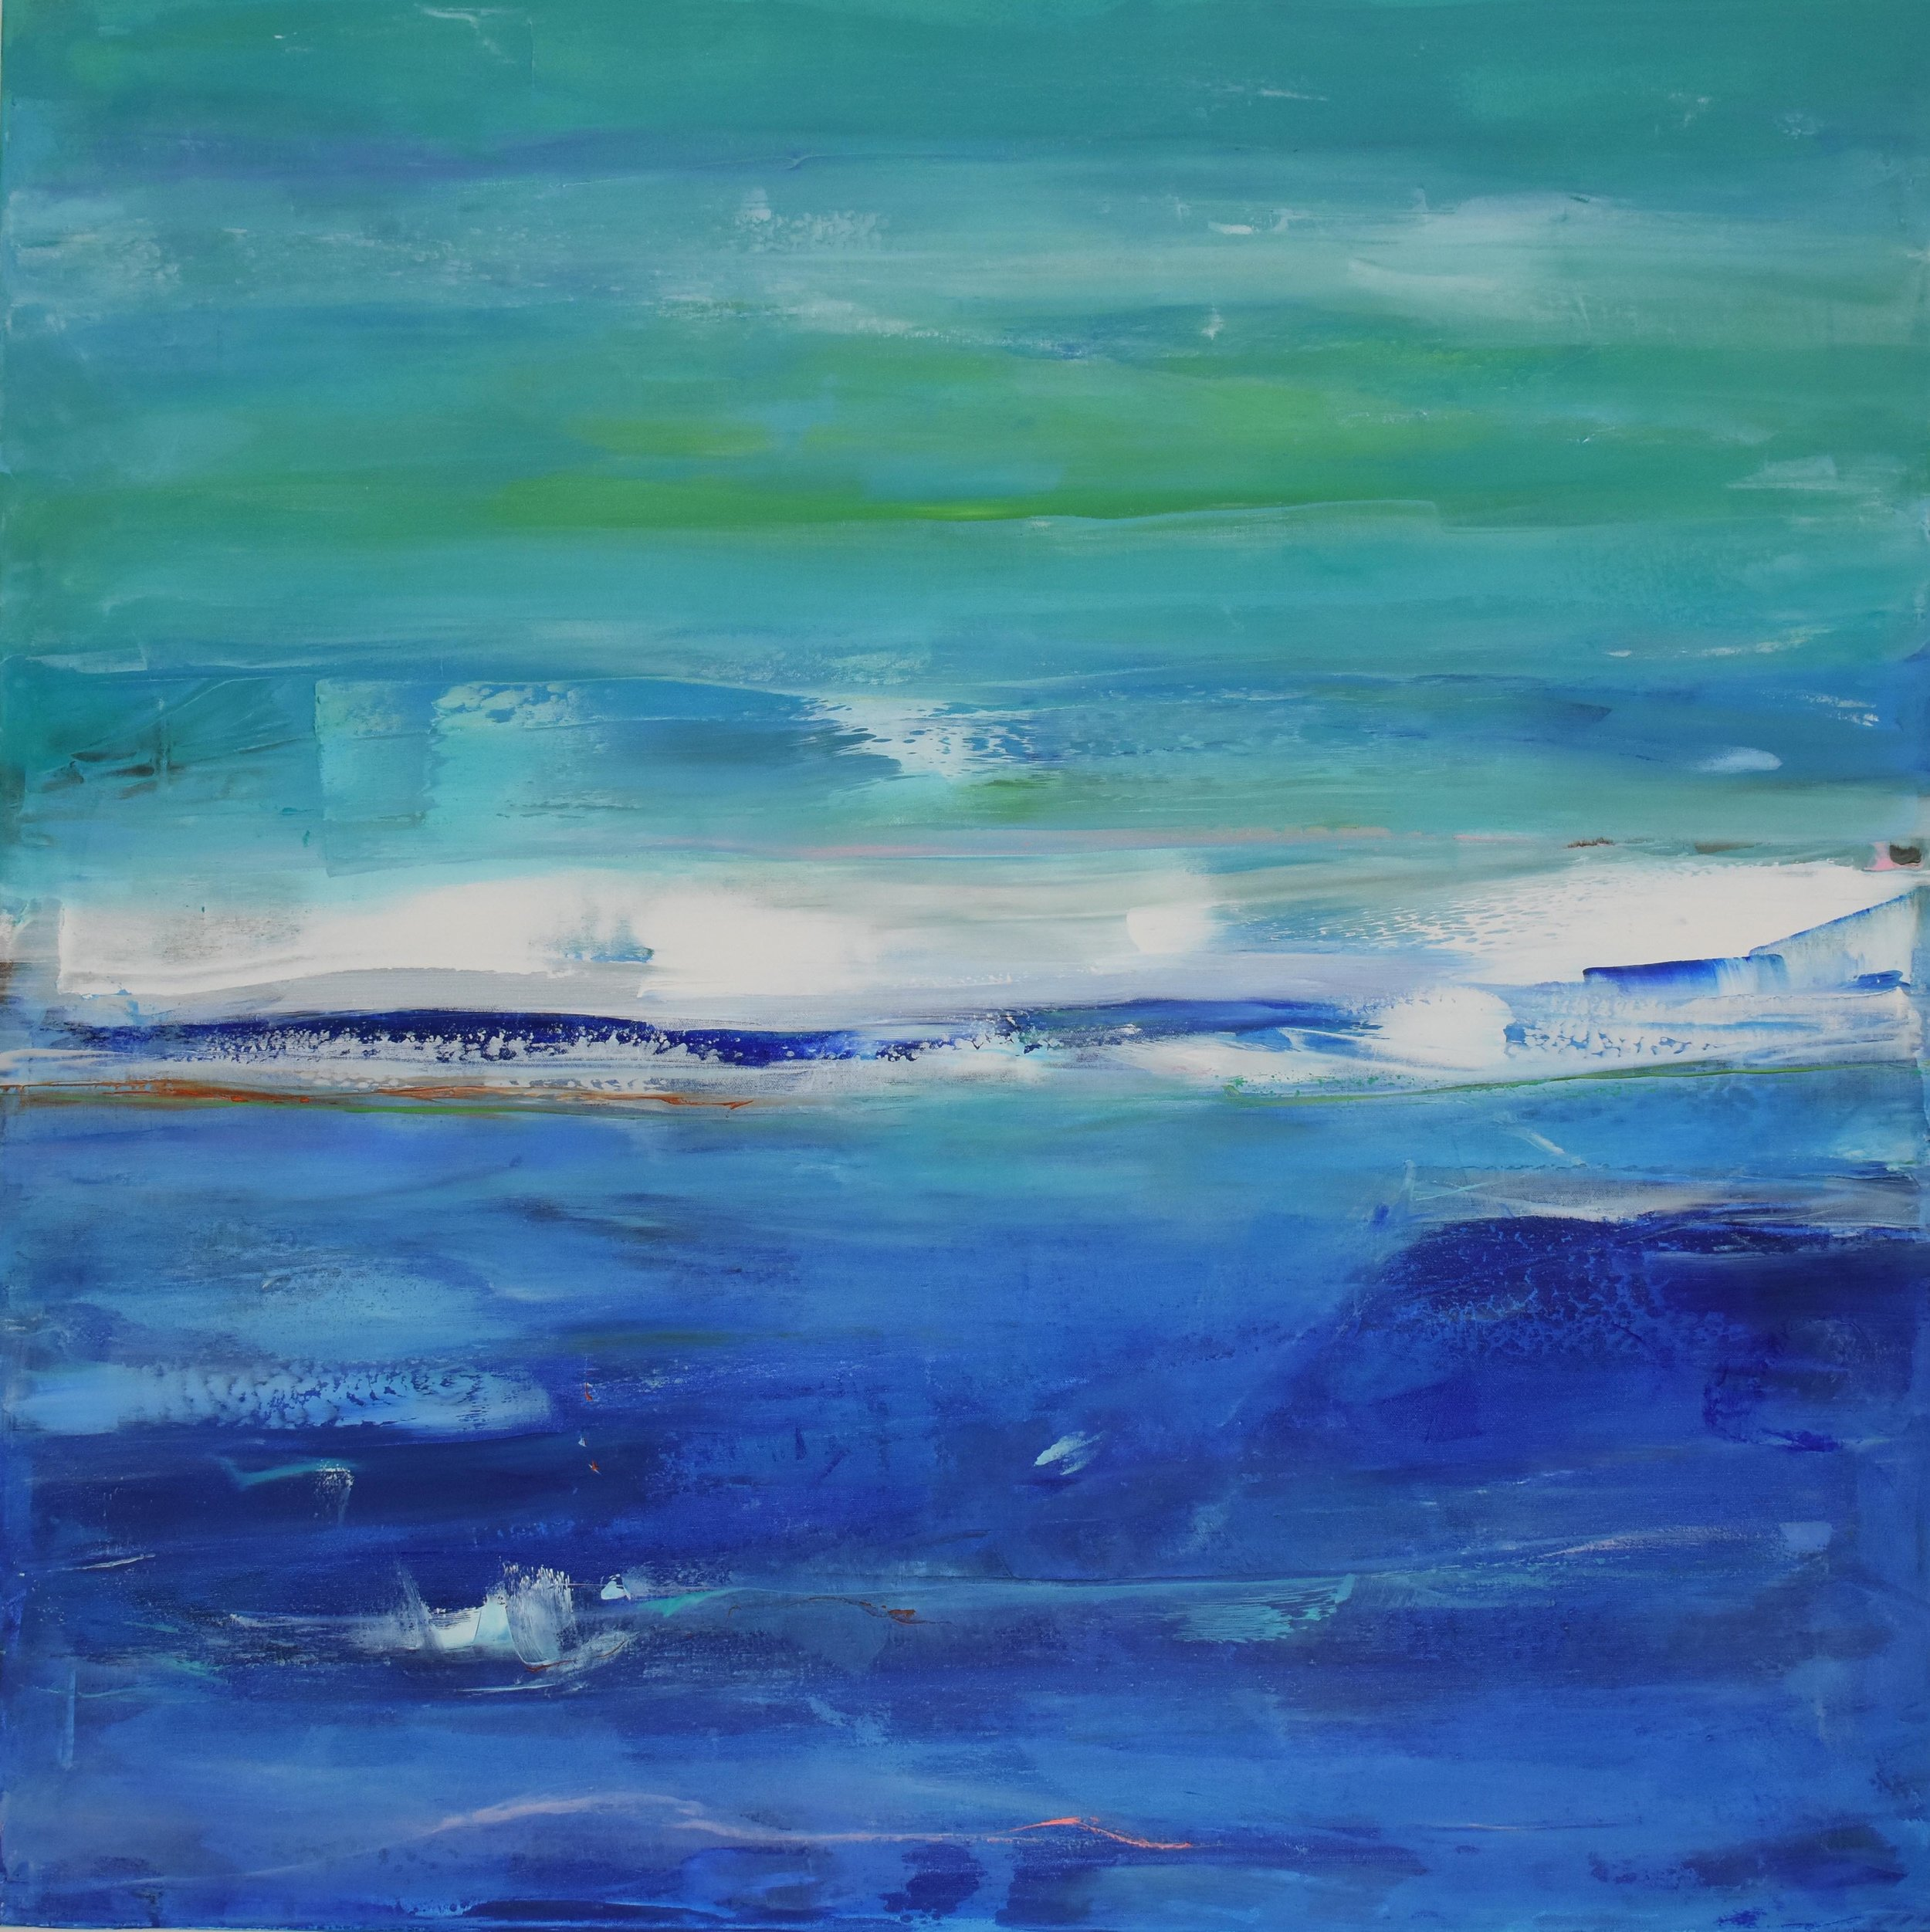 CROSSING THE OCEAN, OIL ON CANVAS, 40 X 40 INCHES CAD $ 2900.-